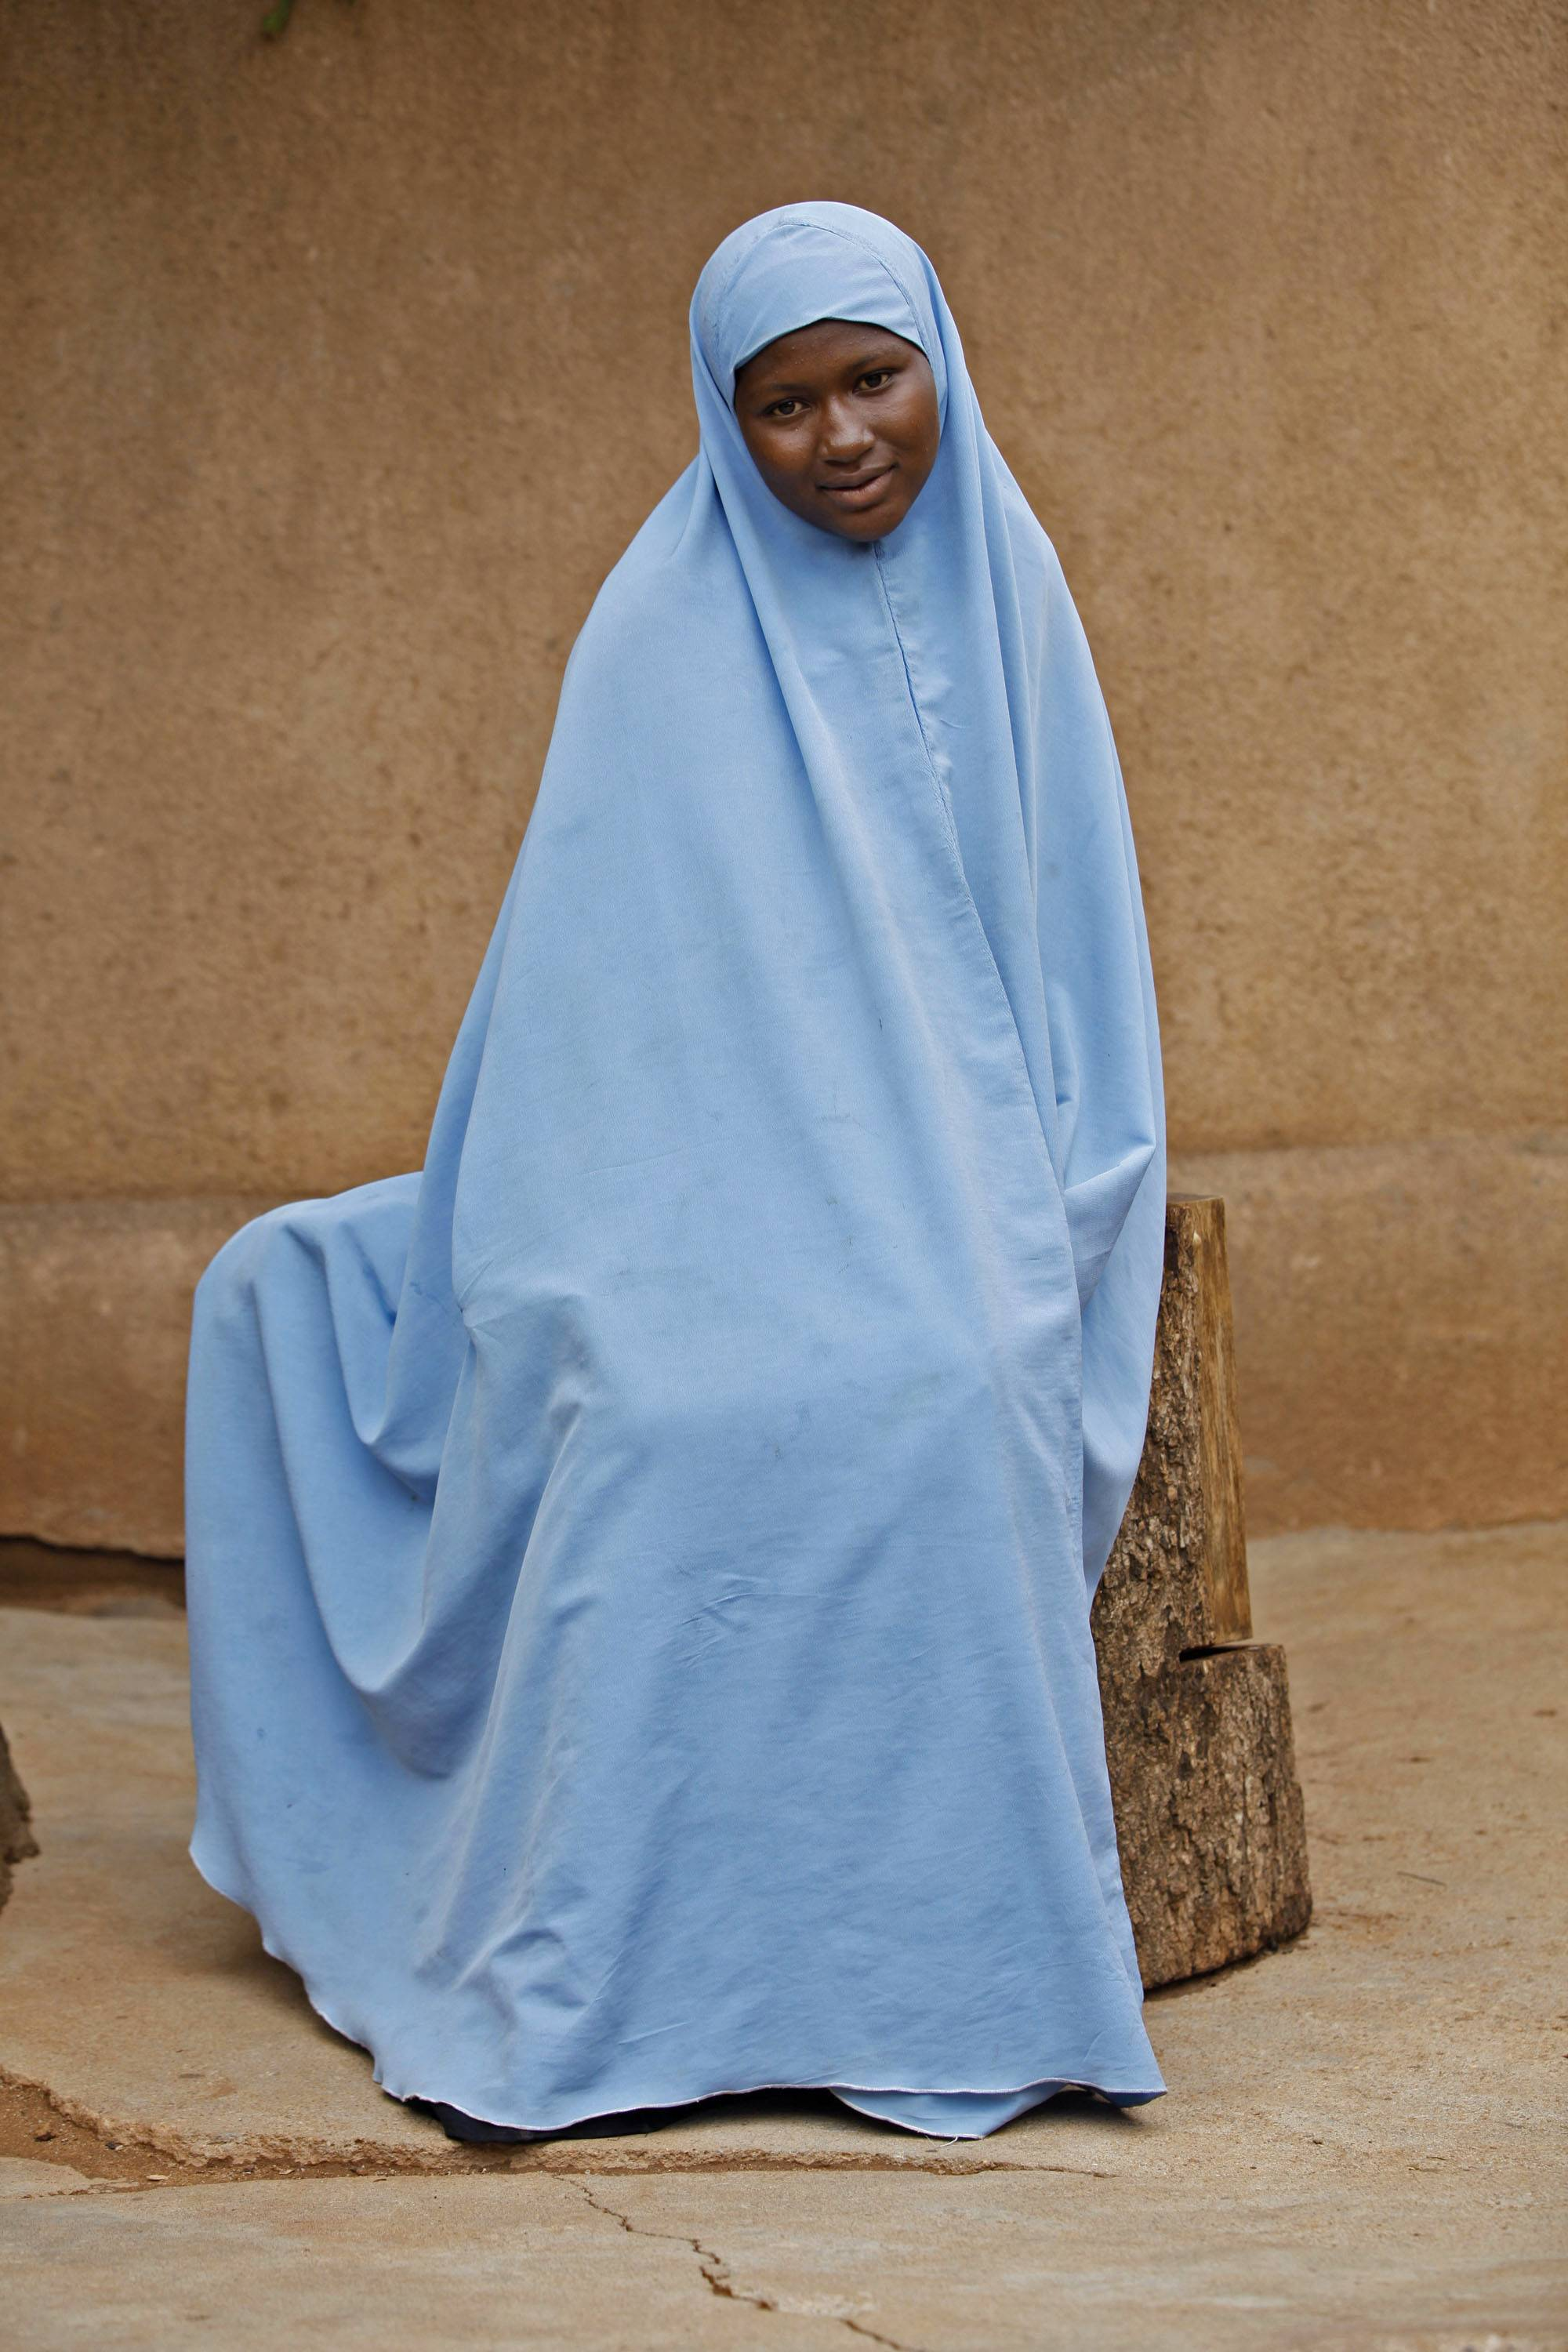 In this Sunday, June 1, photo, Maimuna Abdullahi sits outside her school in Kaduna, Nigeria. Maimuna wore the scars of an abused woman anywhere: A swollen face, a starved body, and, barely a year after her wedding, a divorce. But for Maimuna, it all happened by the time she was 14. Maimuna is one of thousands of divorced girls in Nigeria who were married as children and then got thrown out by their husbands or simply fled.